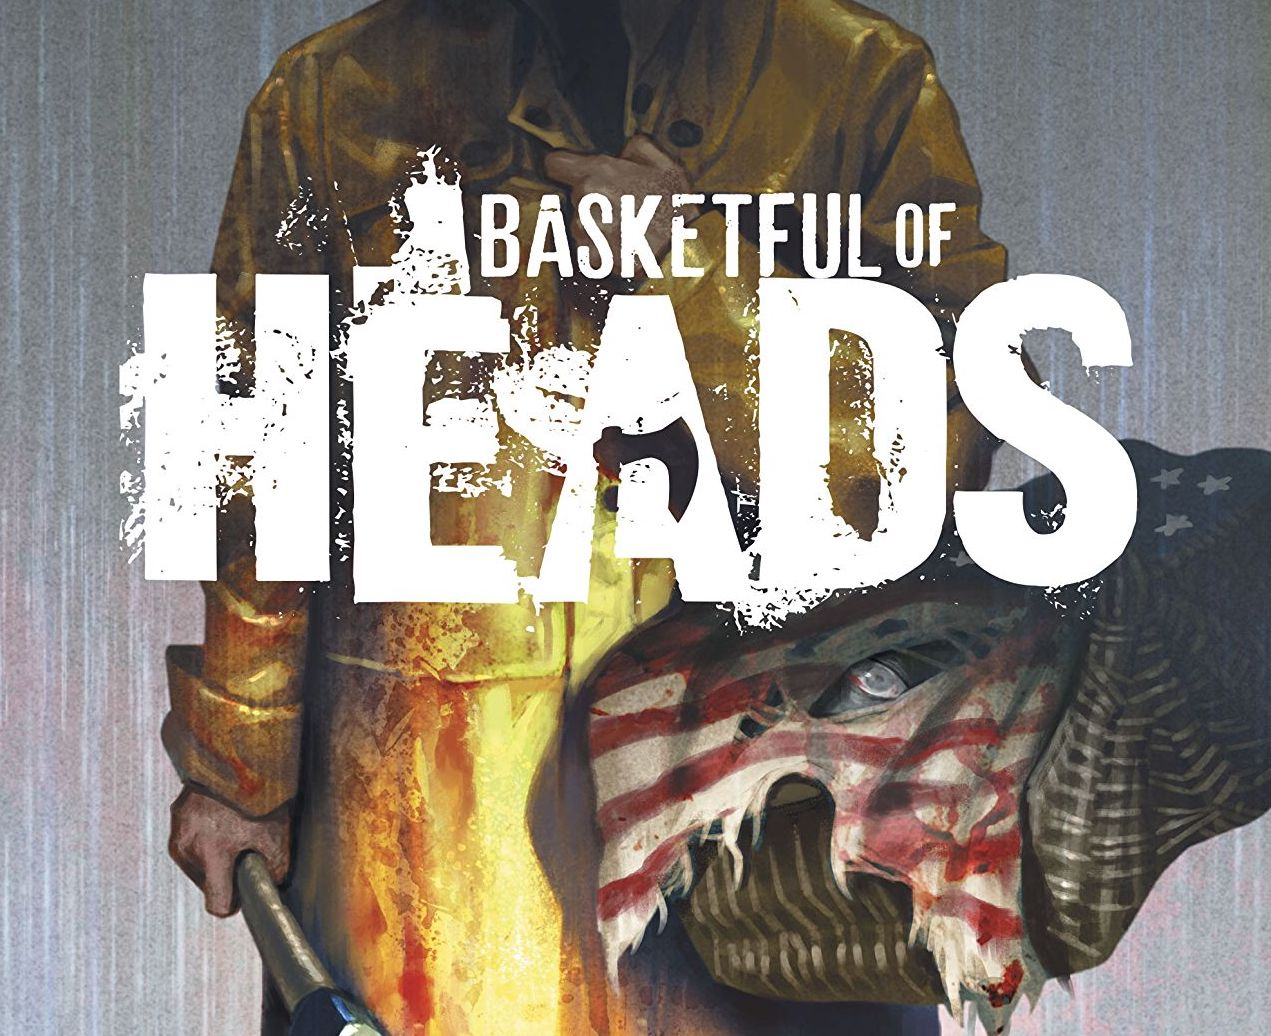 Basketful of Heads #1 Review